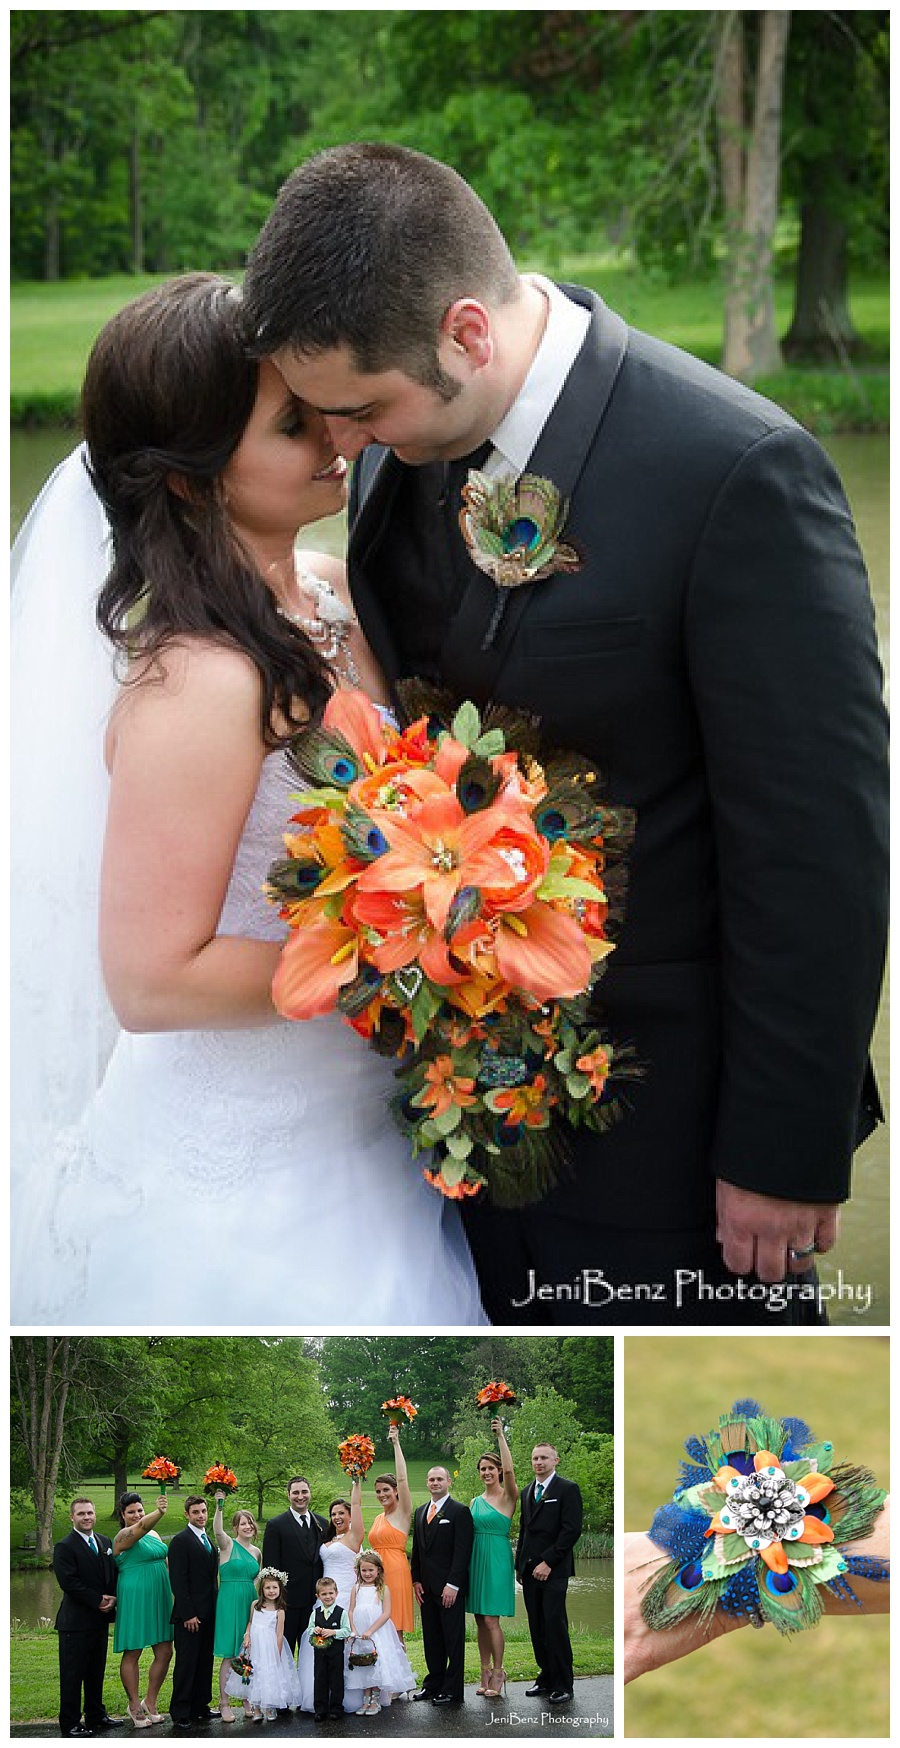 orange and green peacock wedding bouquets at South Park near Pittsburgh